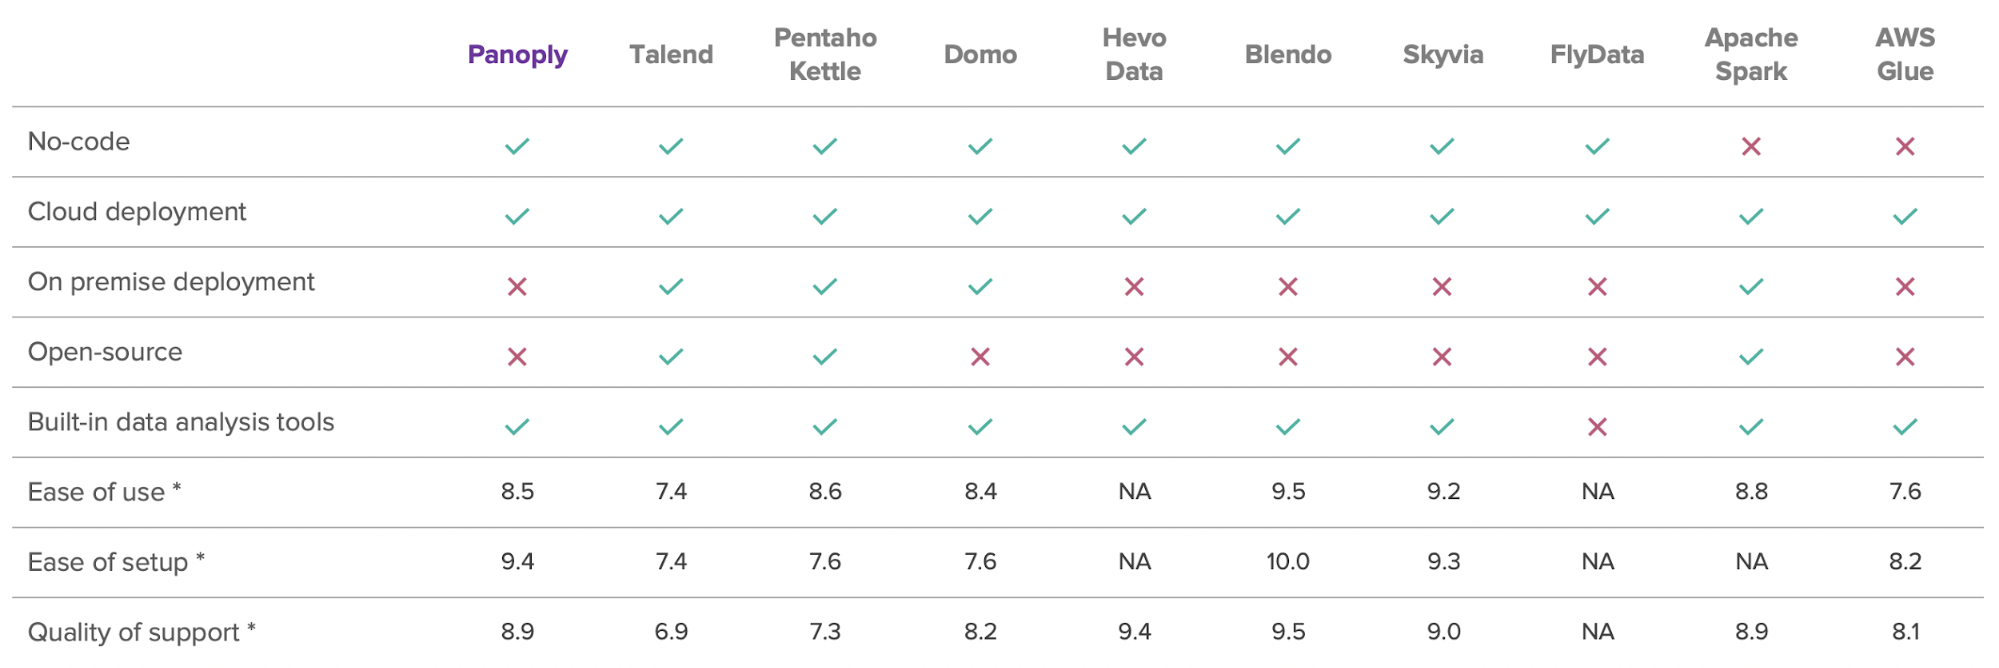 A summary table of different ETL tools and their features.